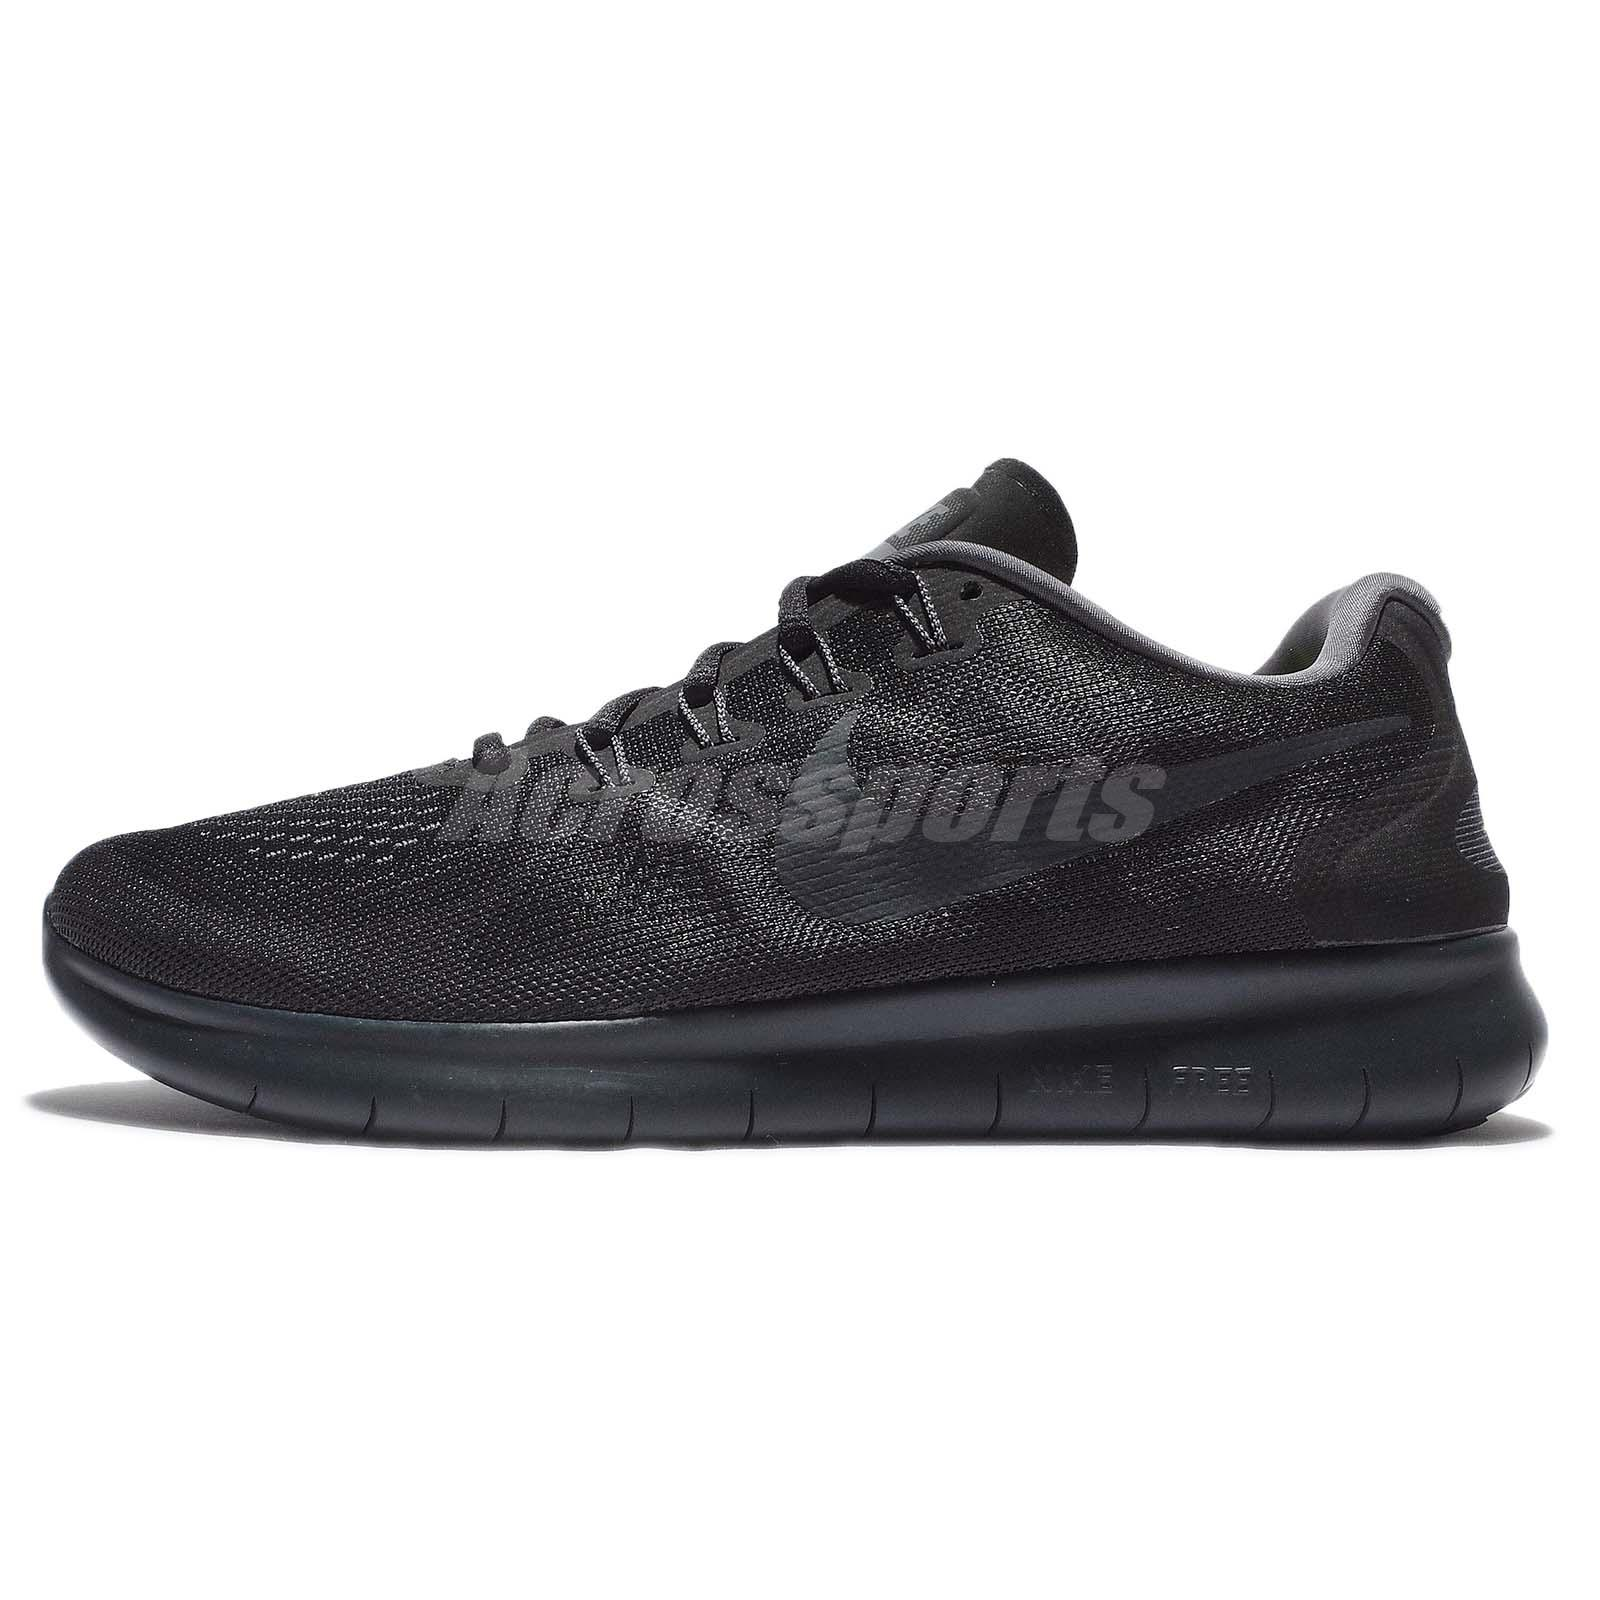 1a9a5c9132c77 Nike Free RN 2017 Run Black Anthracite Men Running Shoes Sneakers 880839-003